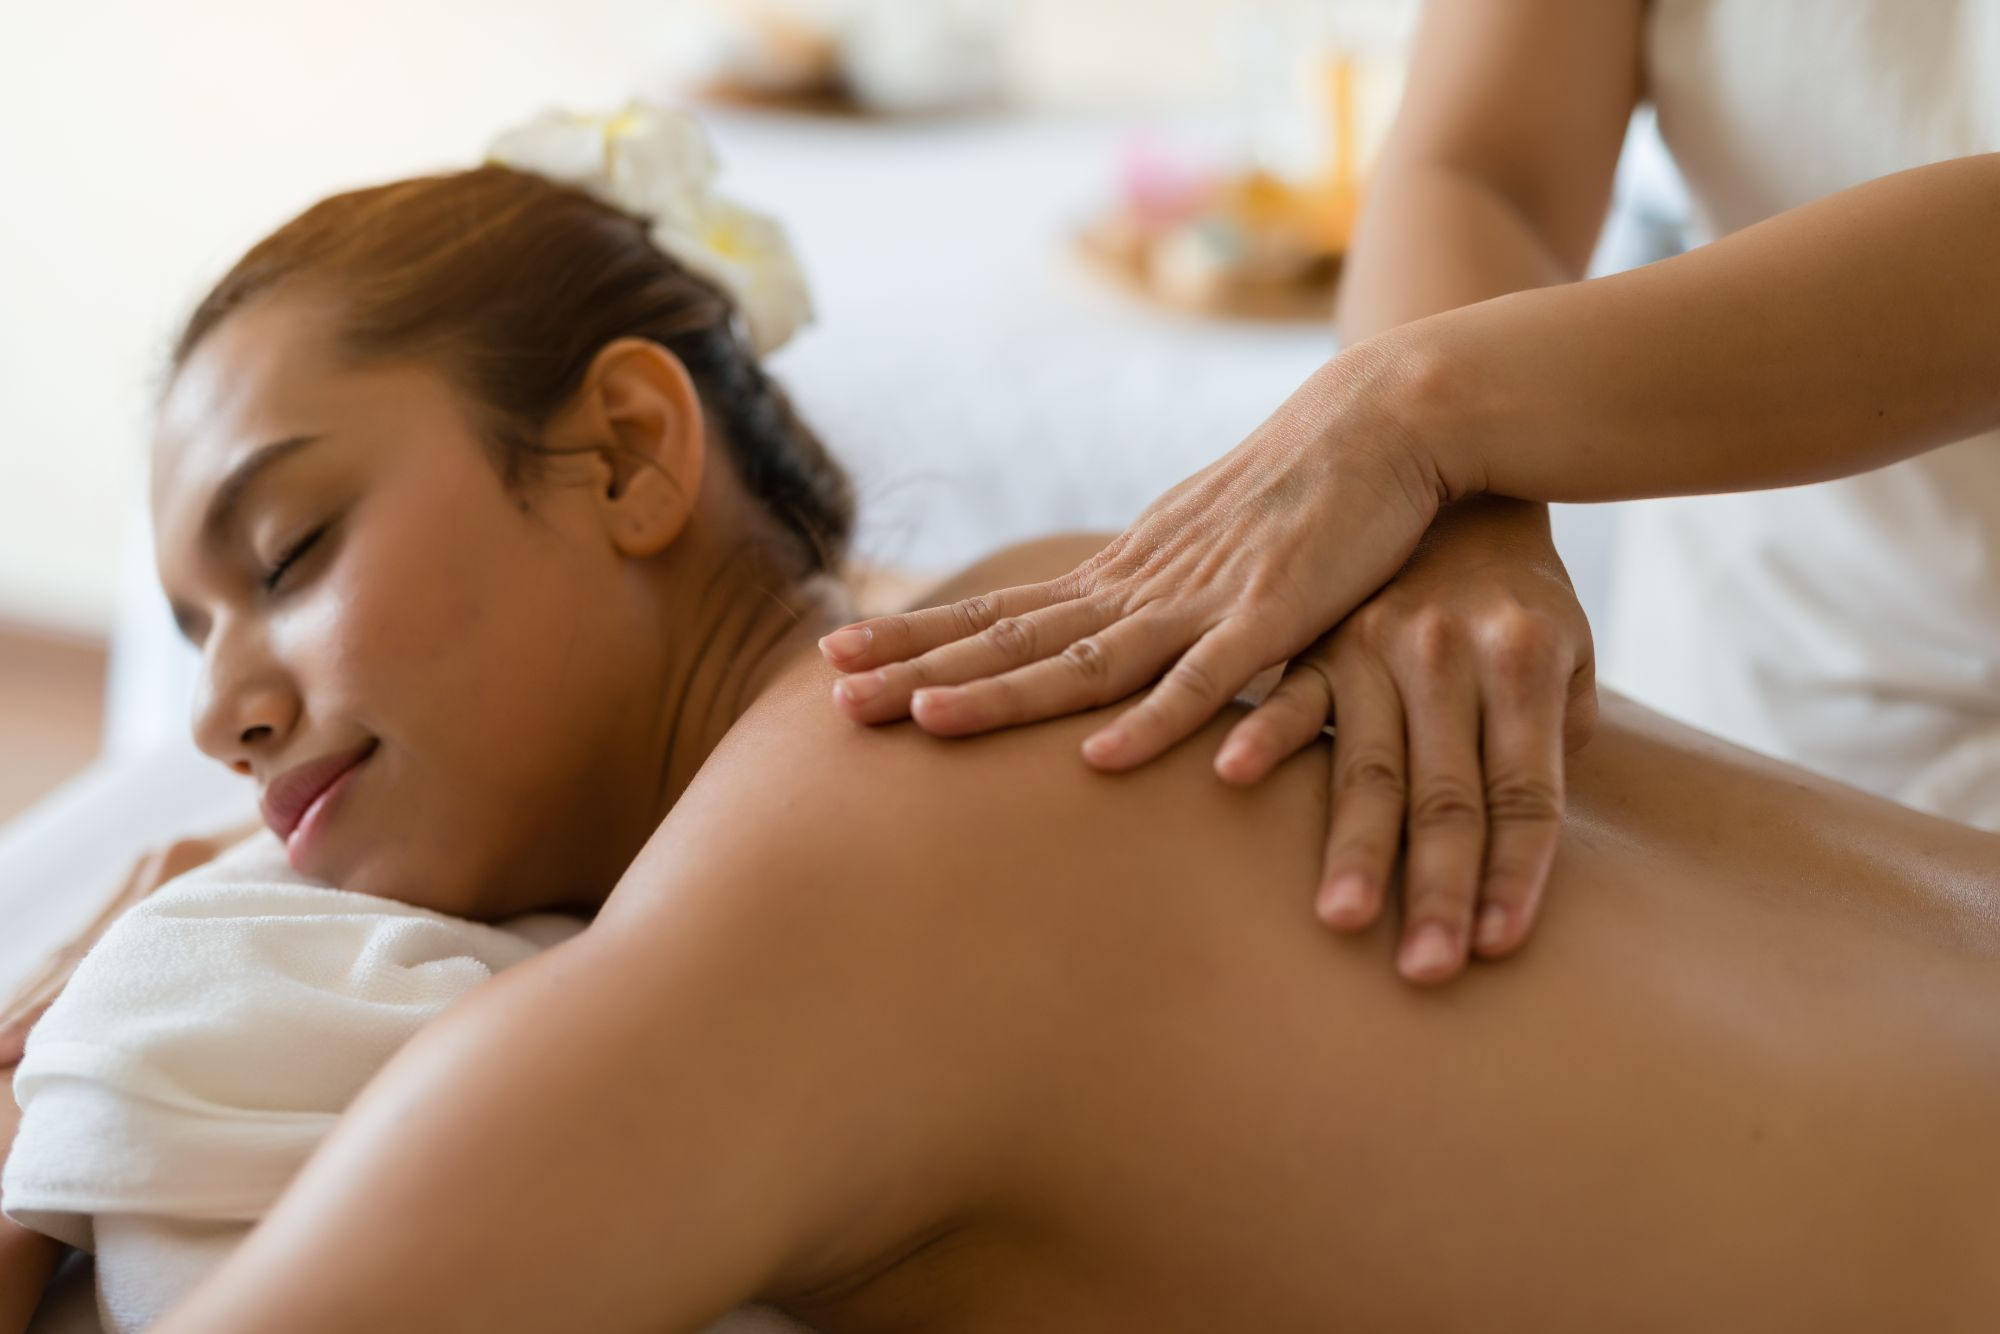 Calico Pregnancy Massage Other Massage Treatments Available